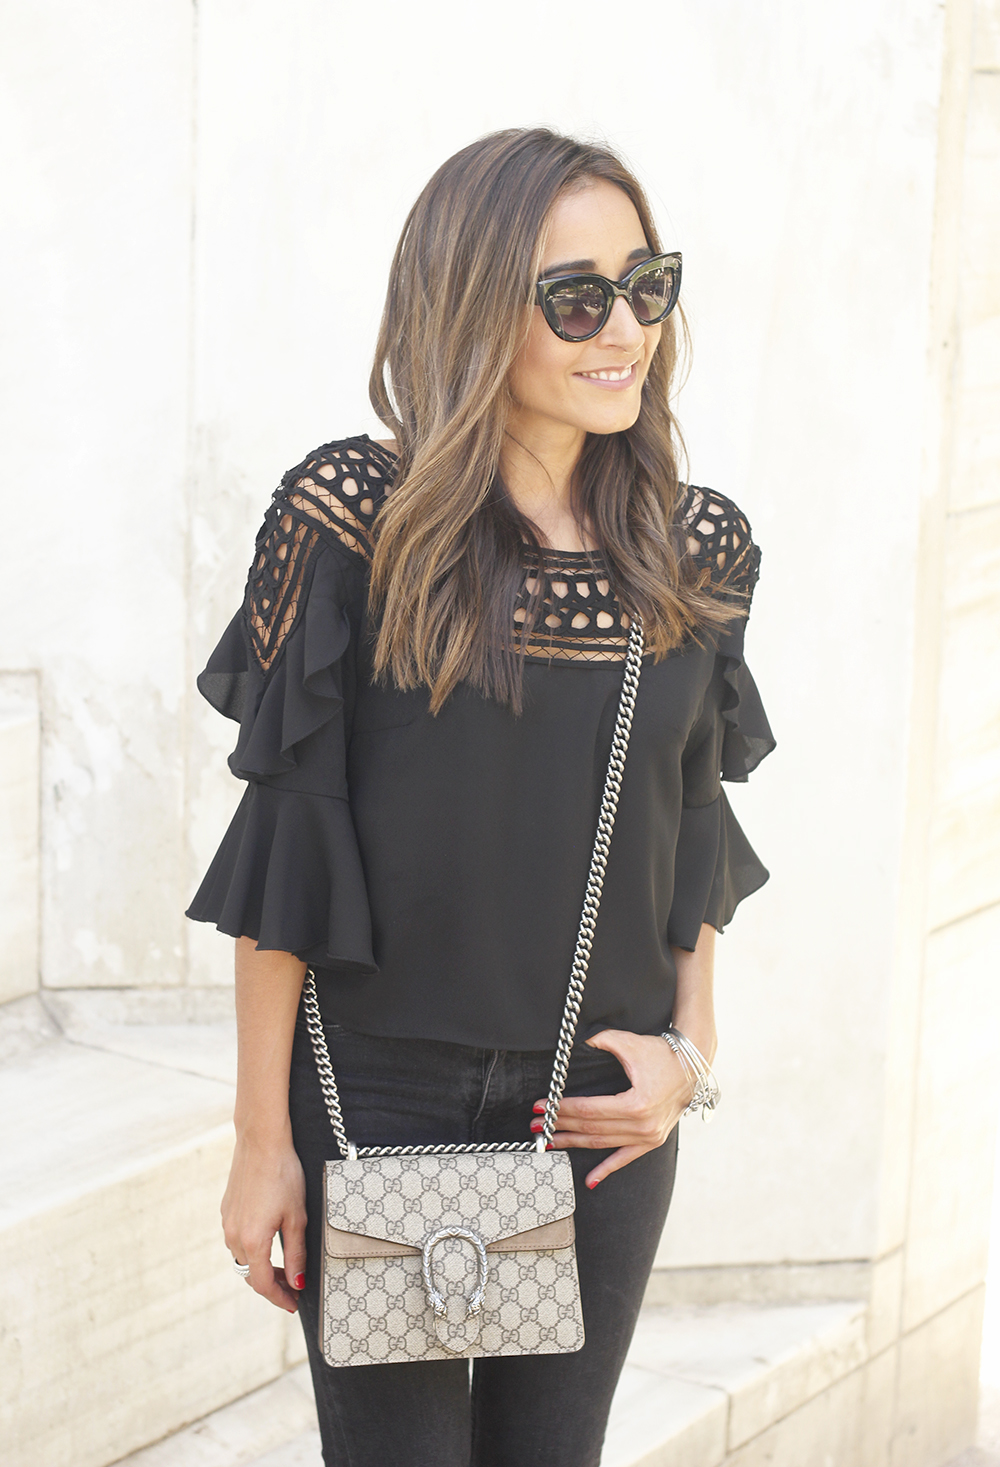 black top black jeans heels gucci bag sunnies outfit fashion style15